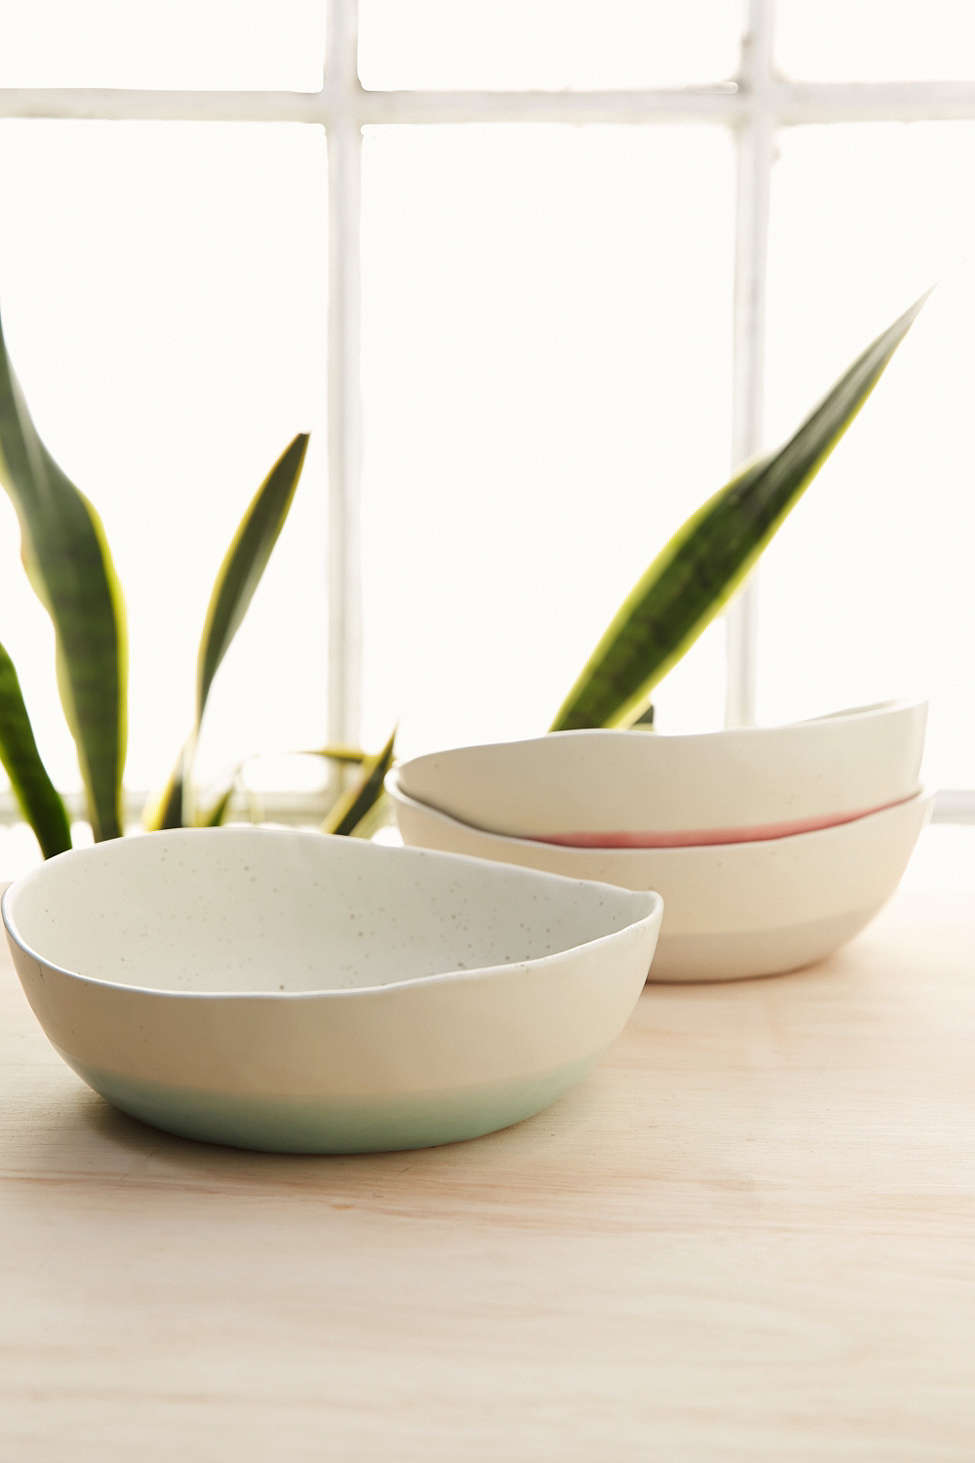 Urban Outfitters' speckled dip bowls